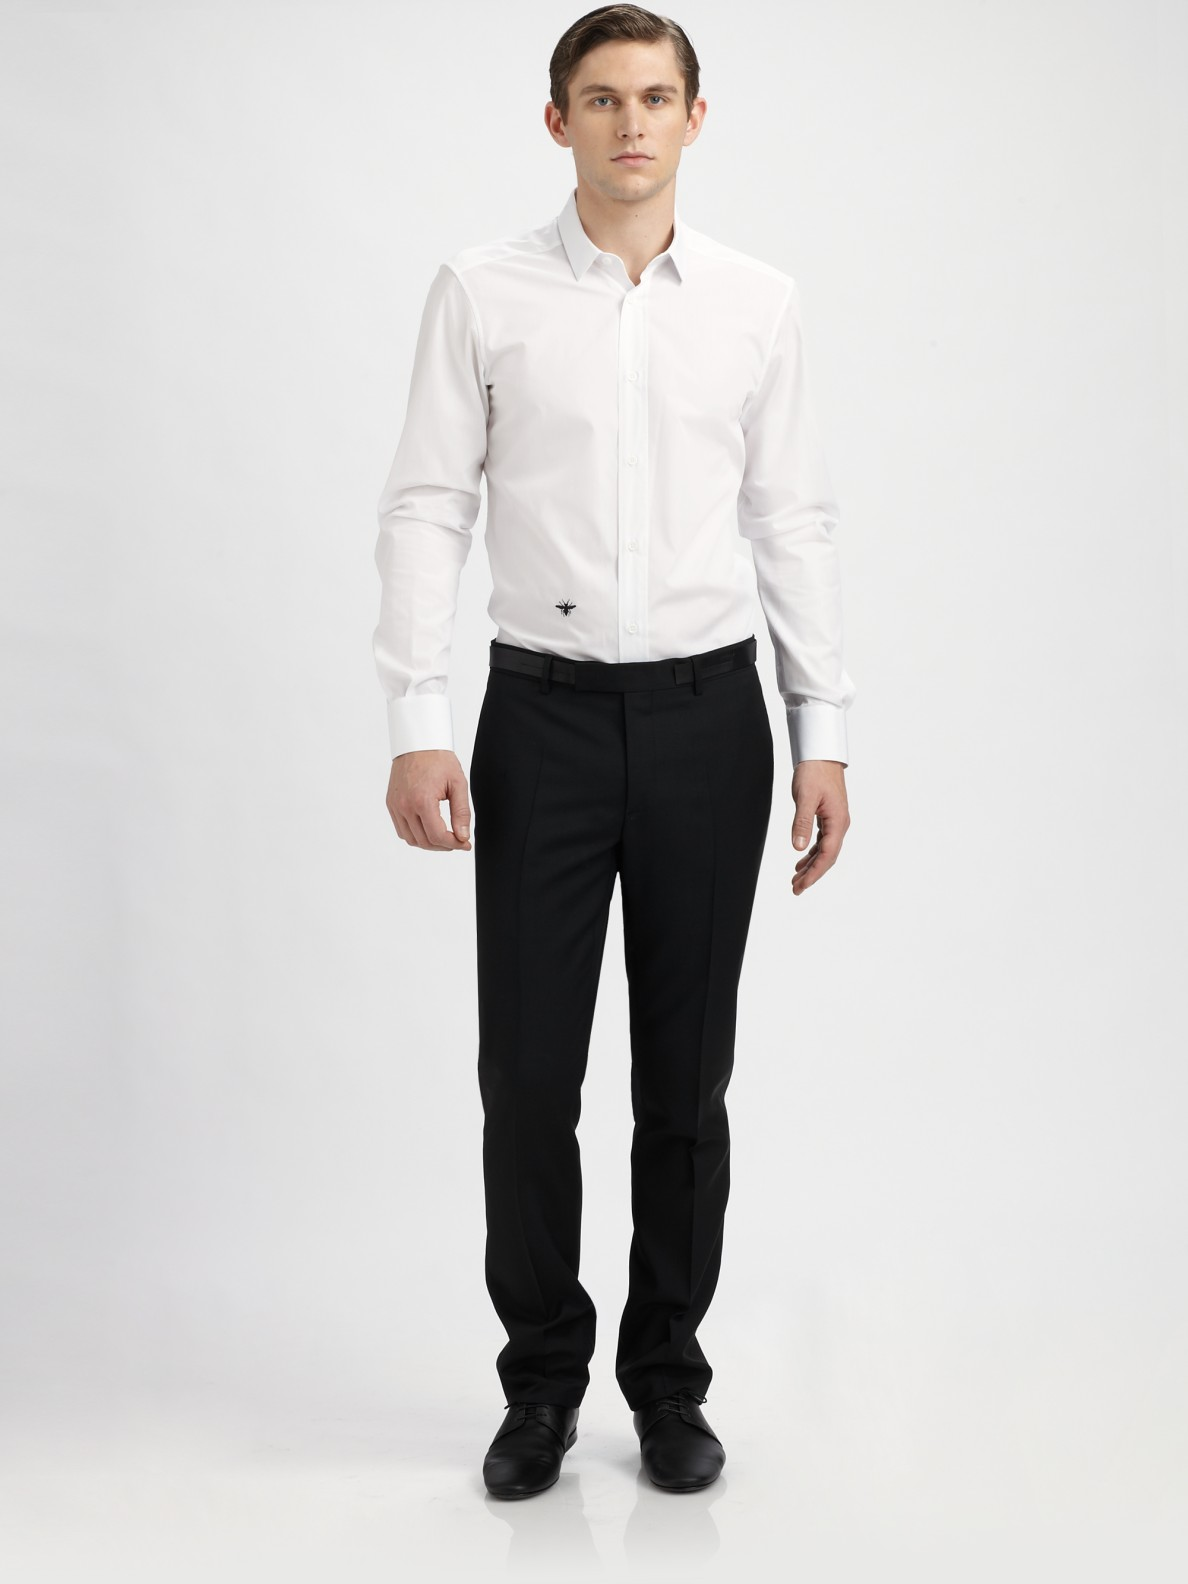 Dior homme Poplin Dress Shirt in White for Men